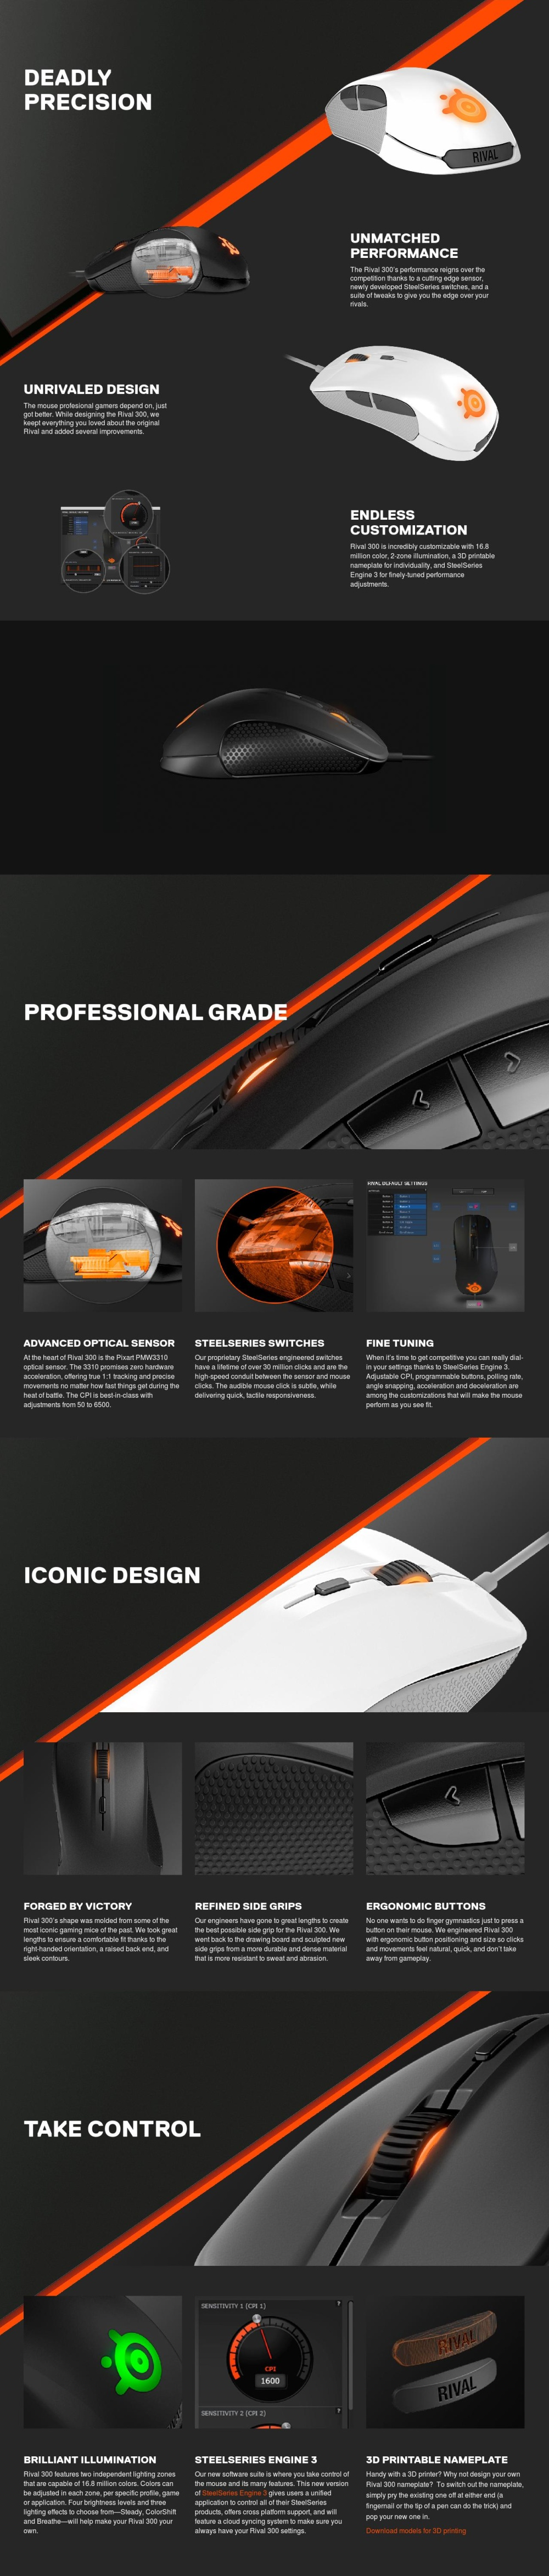 Steelseries Rival 300 CS:GO Fade Edition *PC SHOW* Singapore